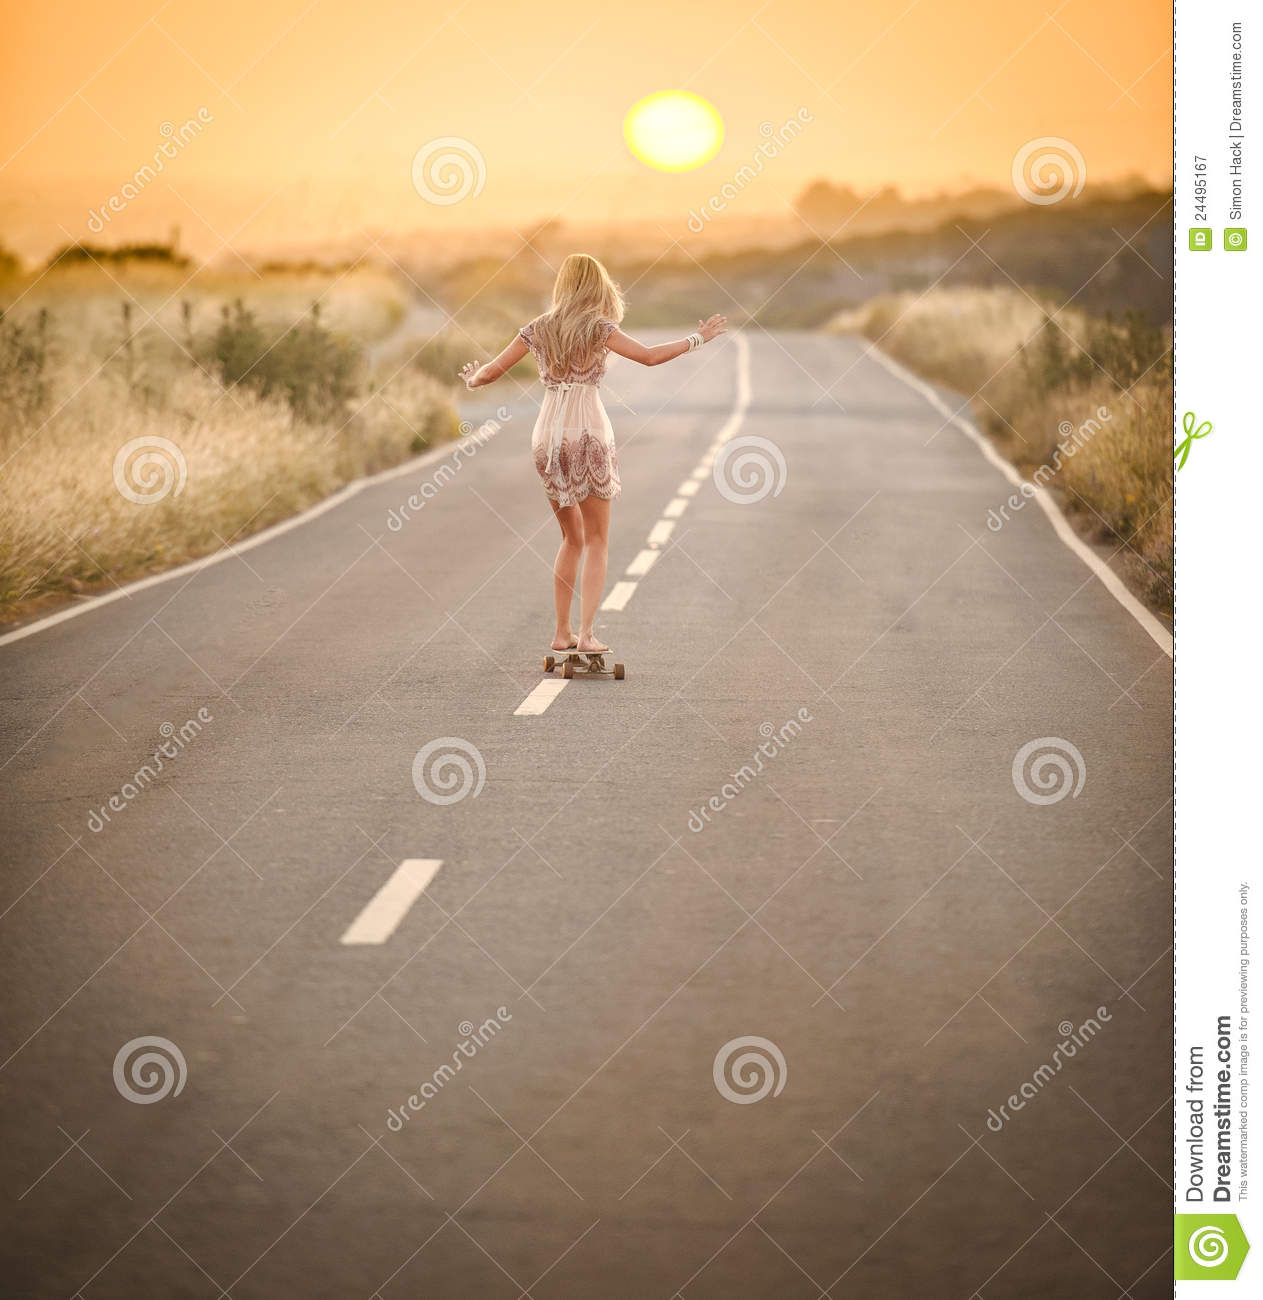 Girl walking with her skateboard 2